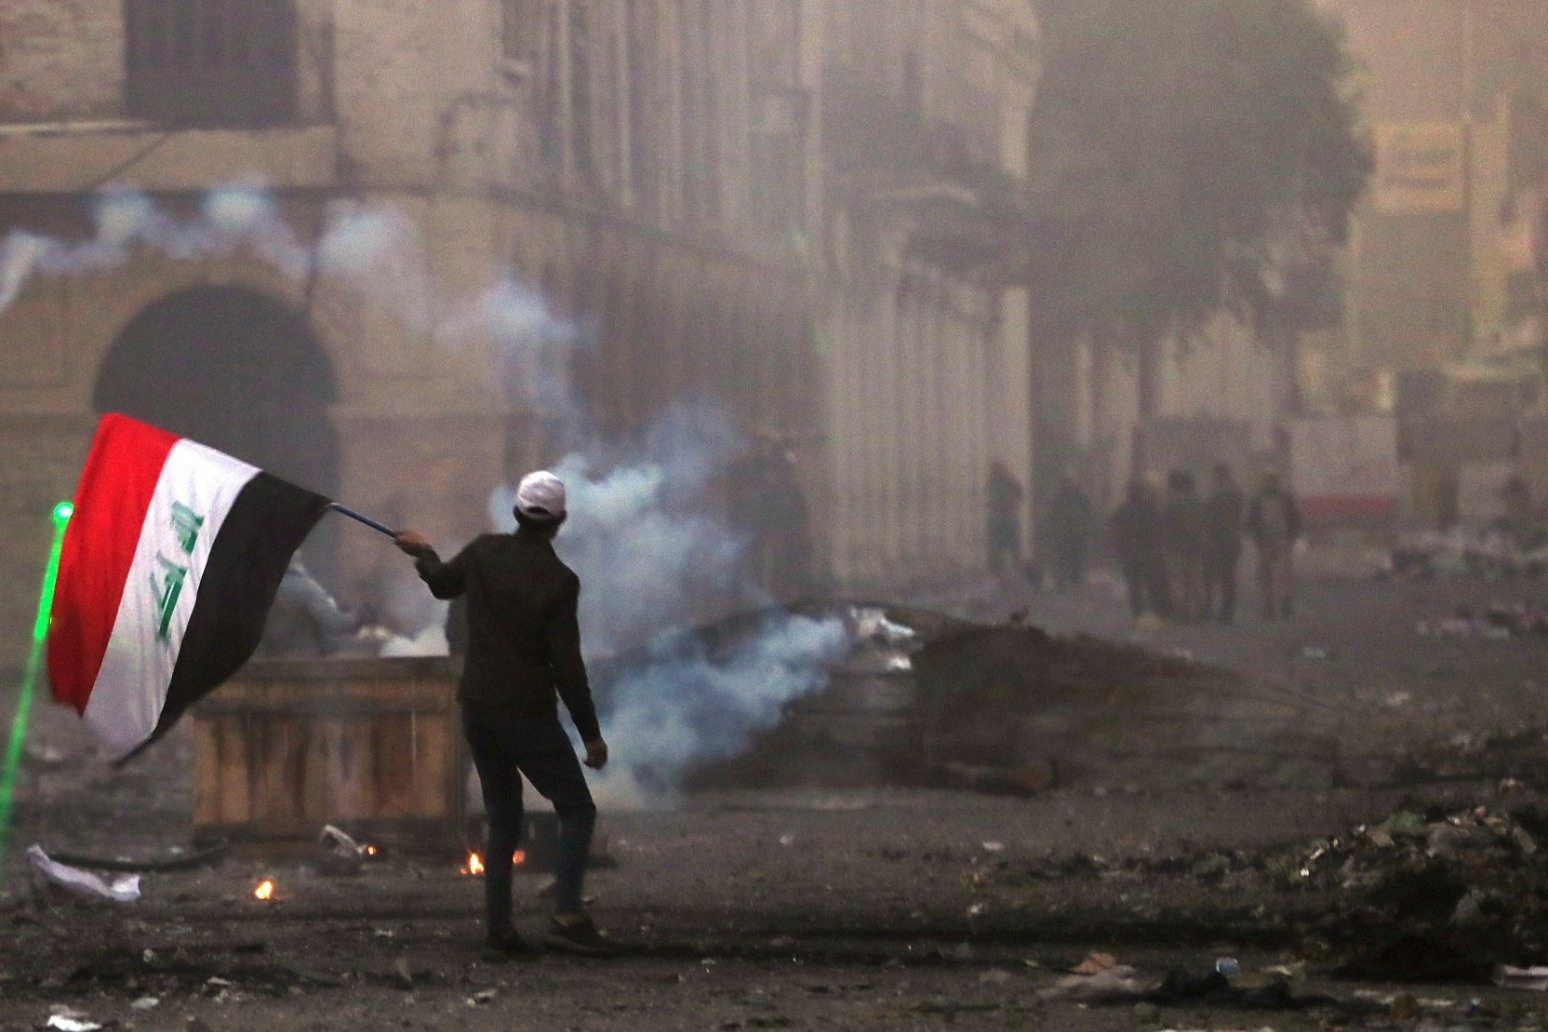 PROTESTERS KILLED AS CLASHES CONTINUE IN BAGHDAD